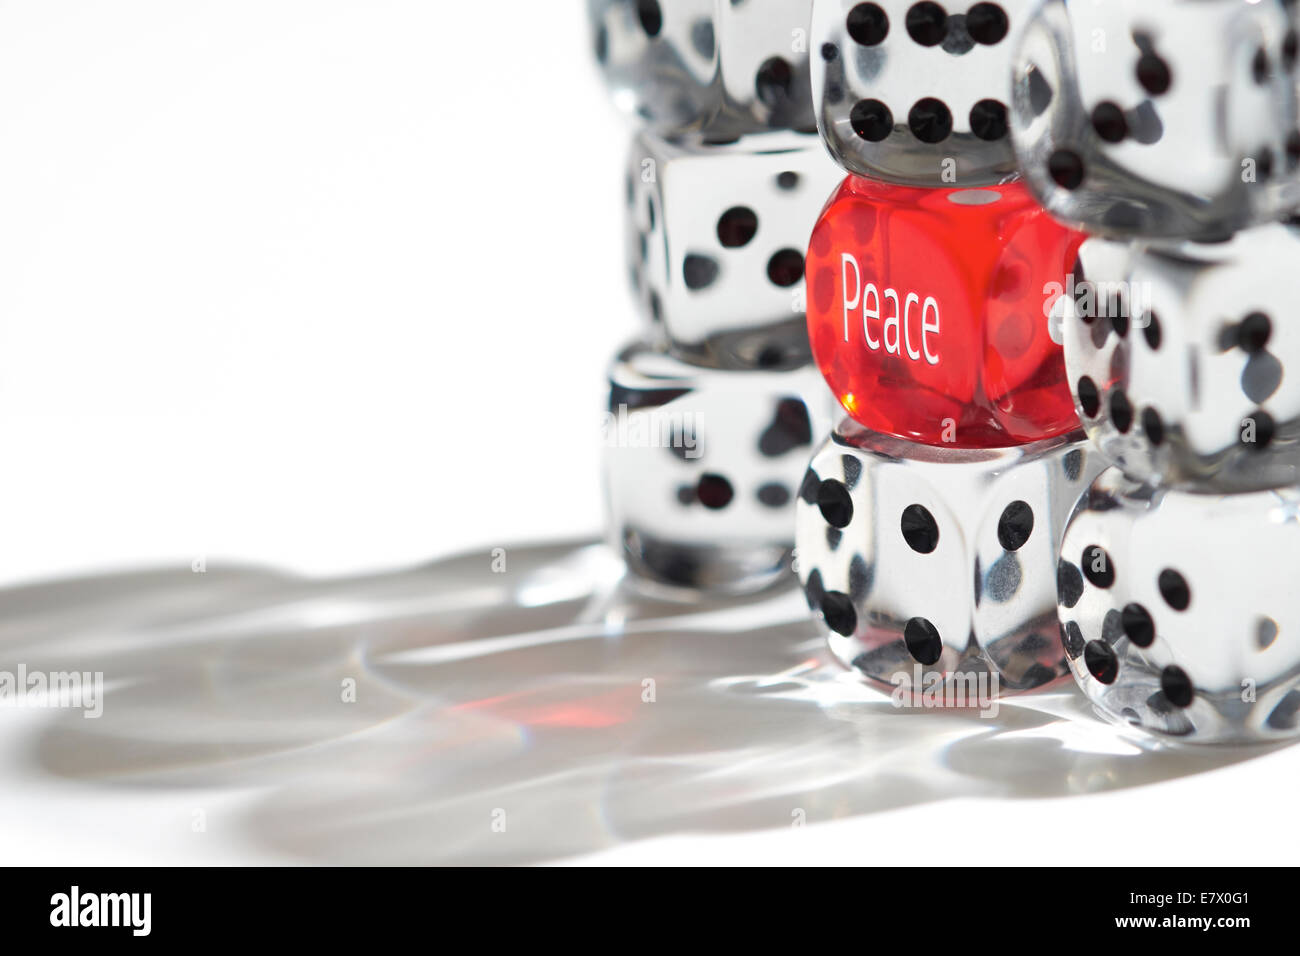 Red Dice Standing out from the crowd, Peace concept. - Stock Image